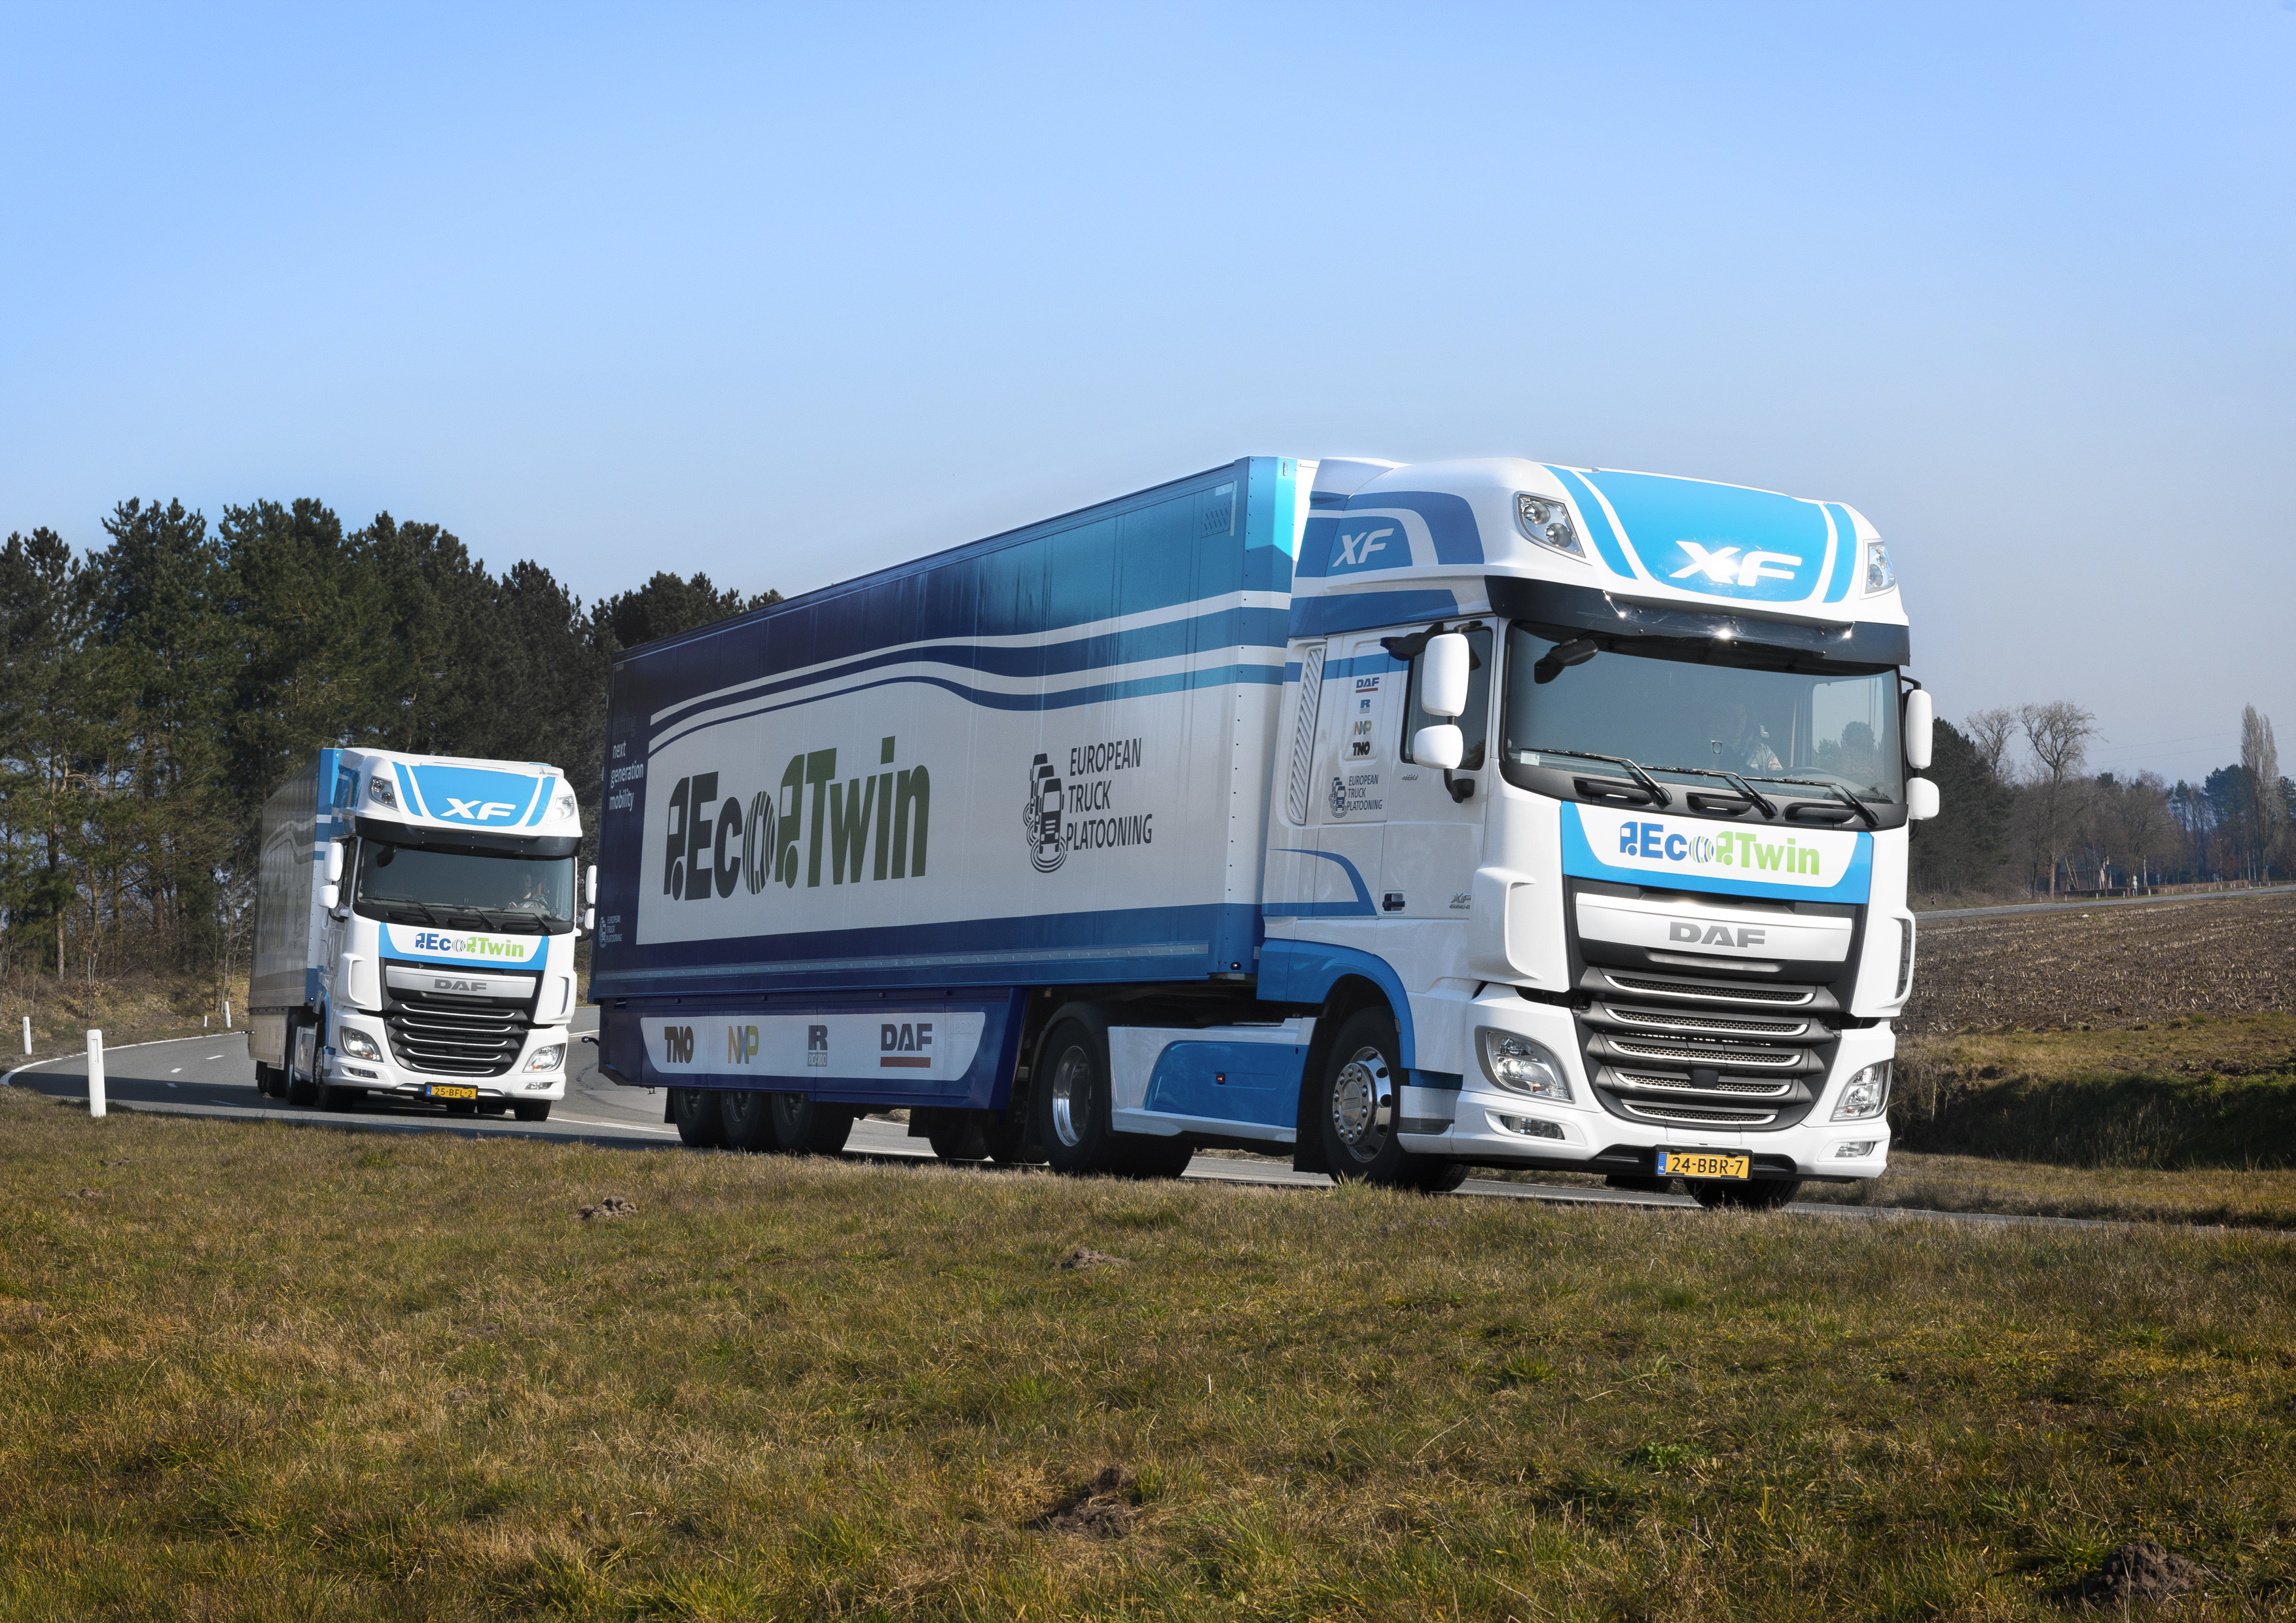 DAF-EcoTwin-participating-in-the-European-Truck-Platooning-Challenge-20160322-02